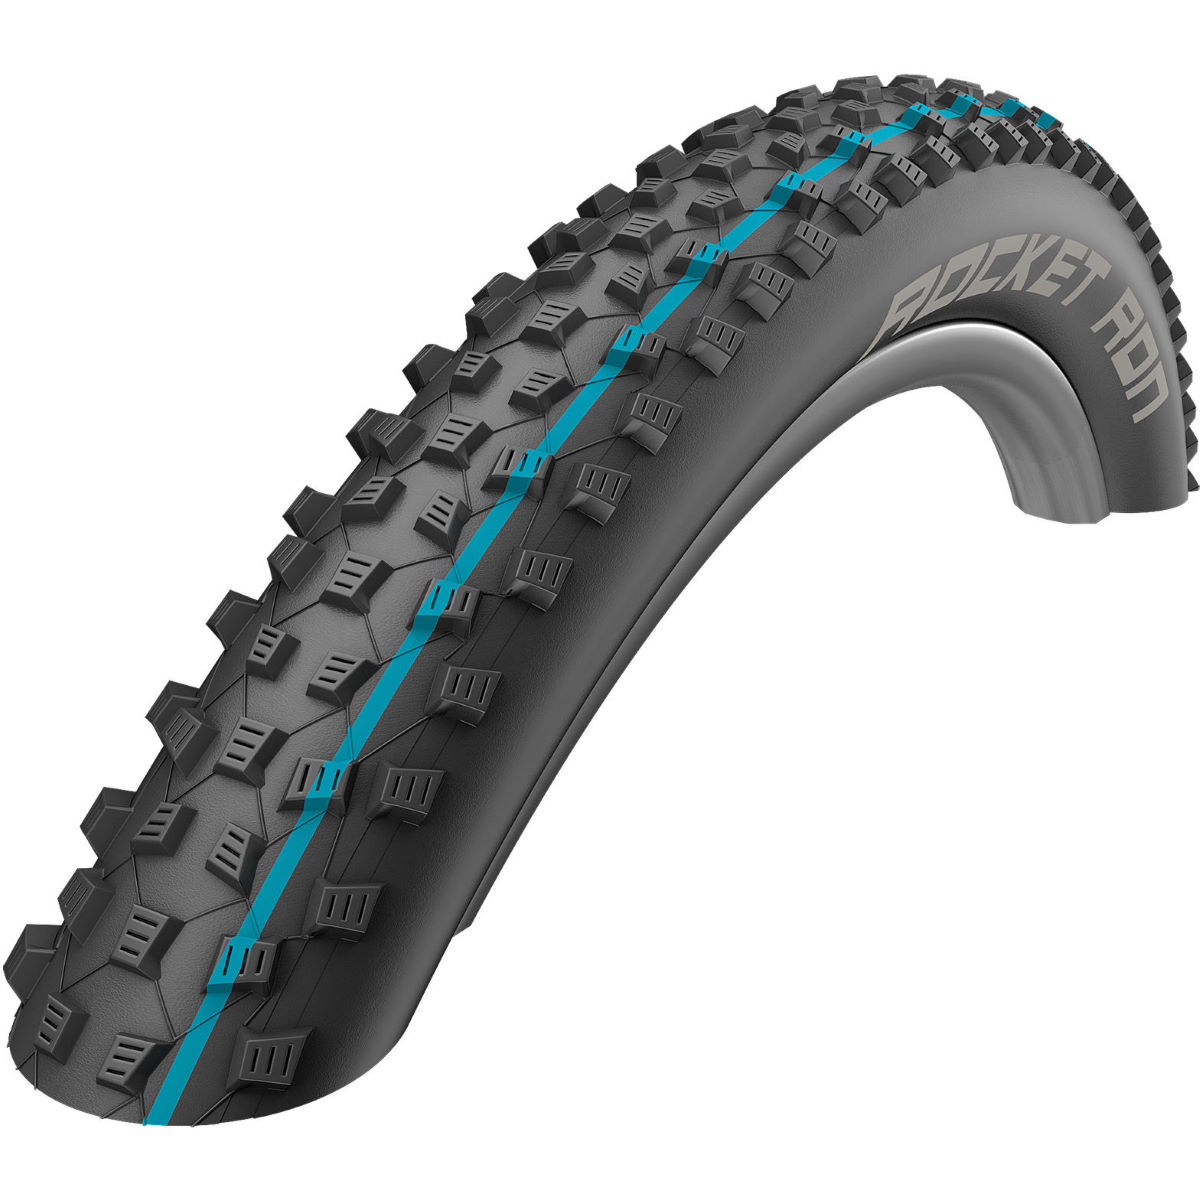 Schwalbe Rocket Ron Addix SnakeSkin Folding MTB Tyre - 2.25' 29' Black / Blue Pneus VTT